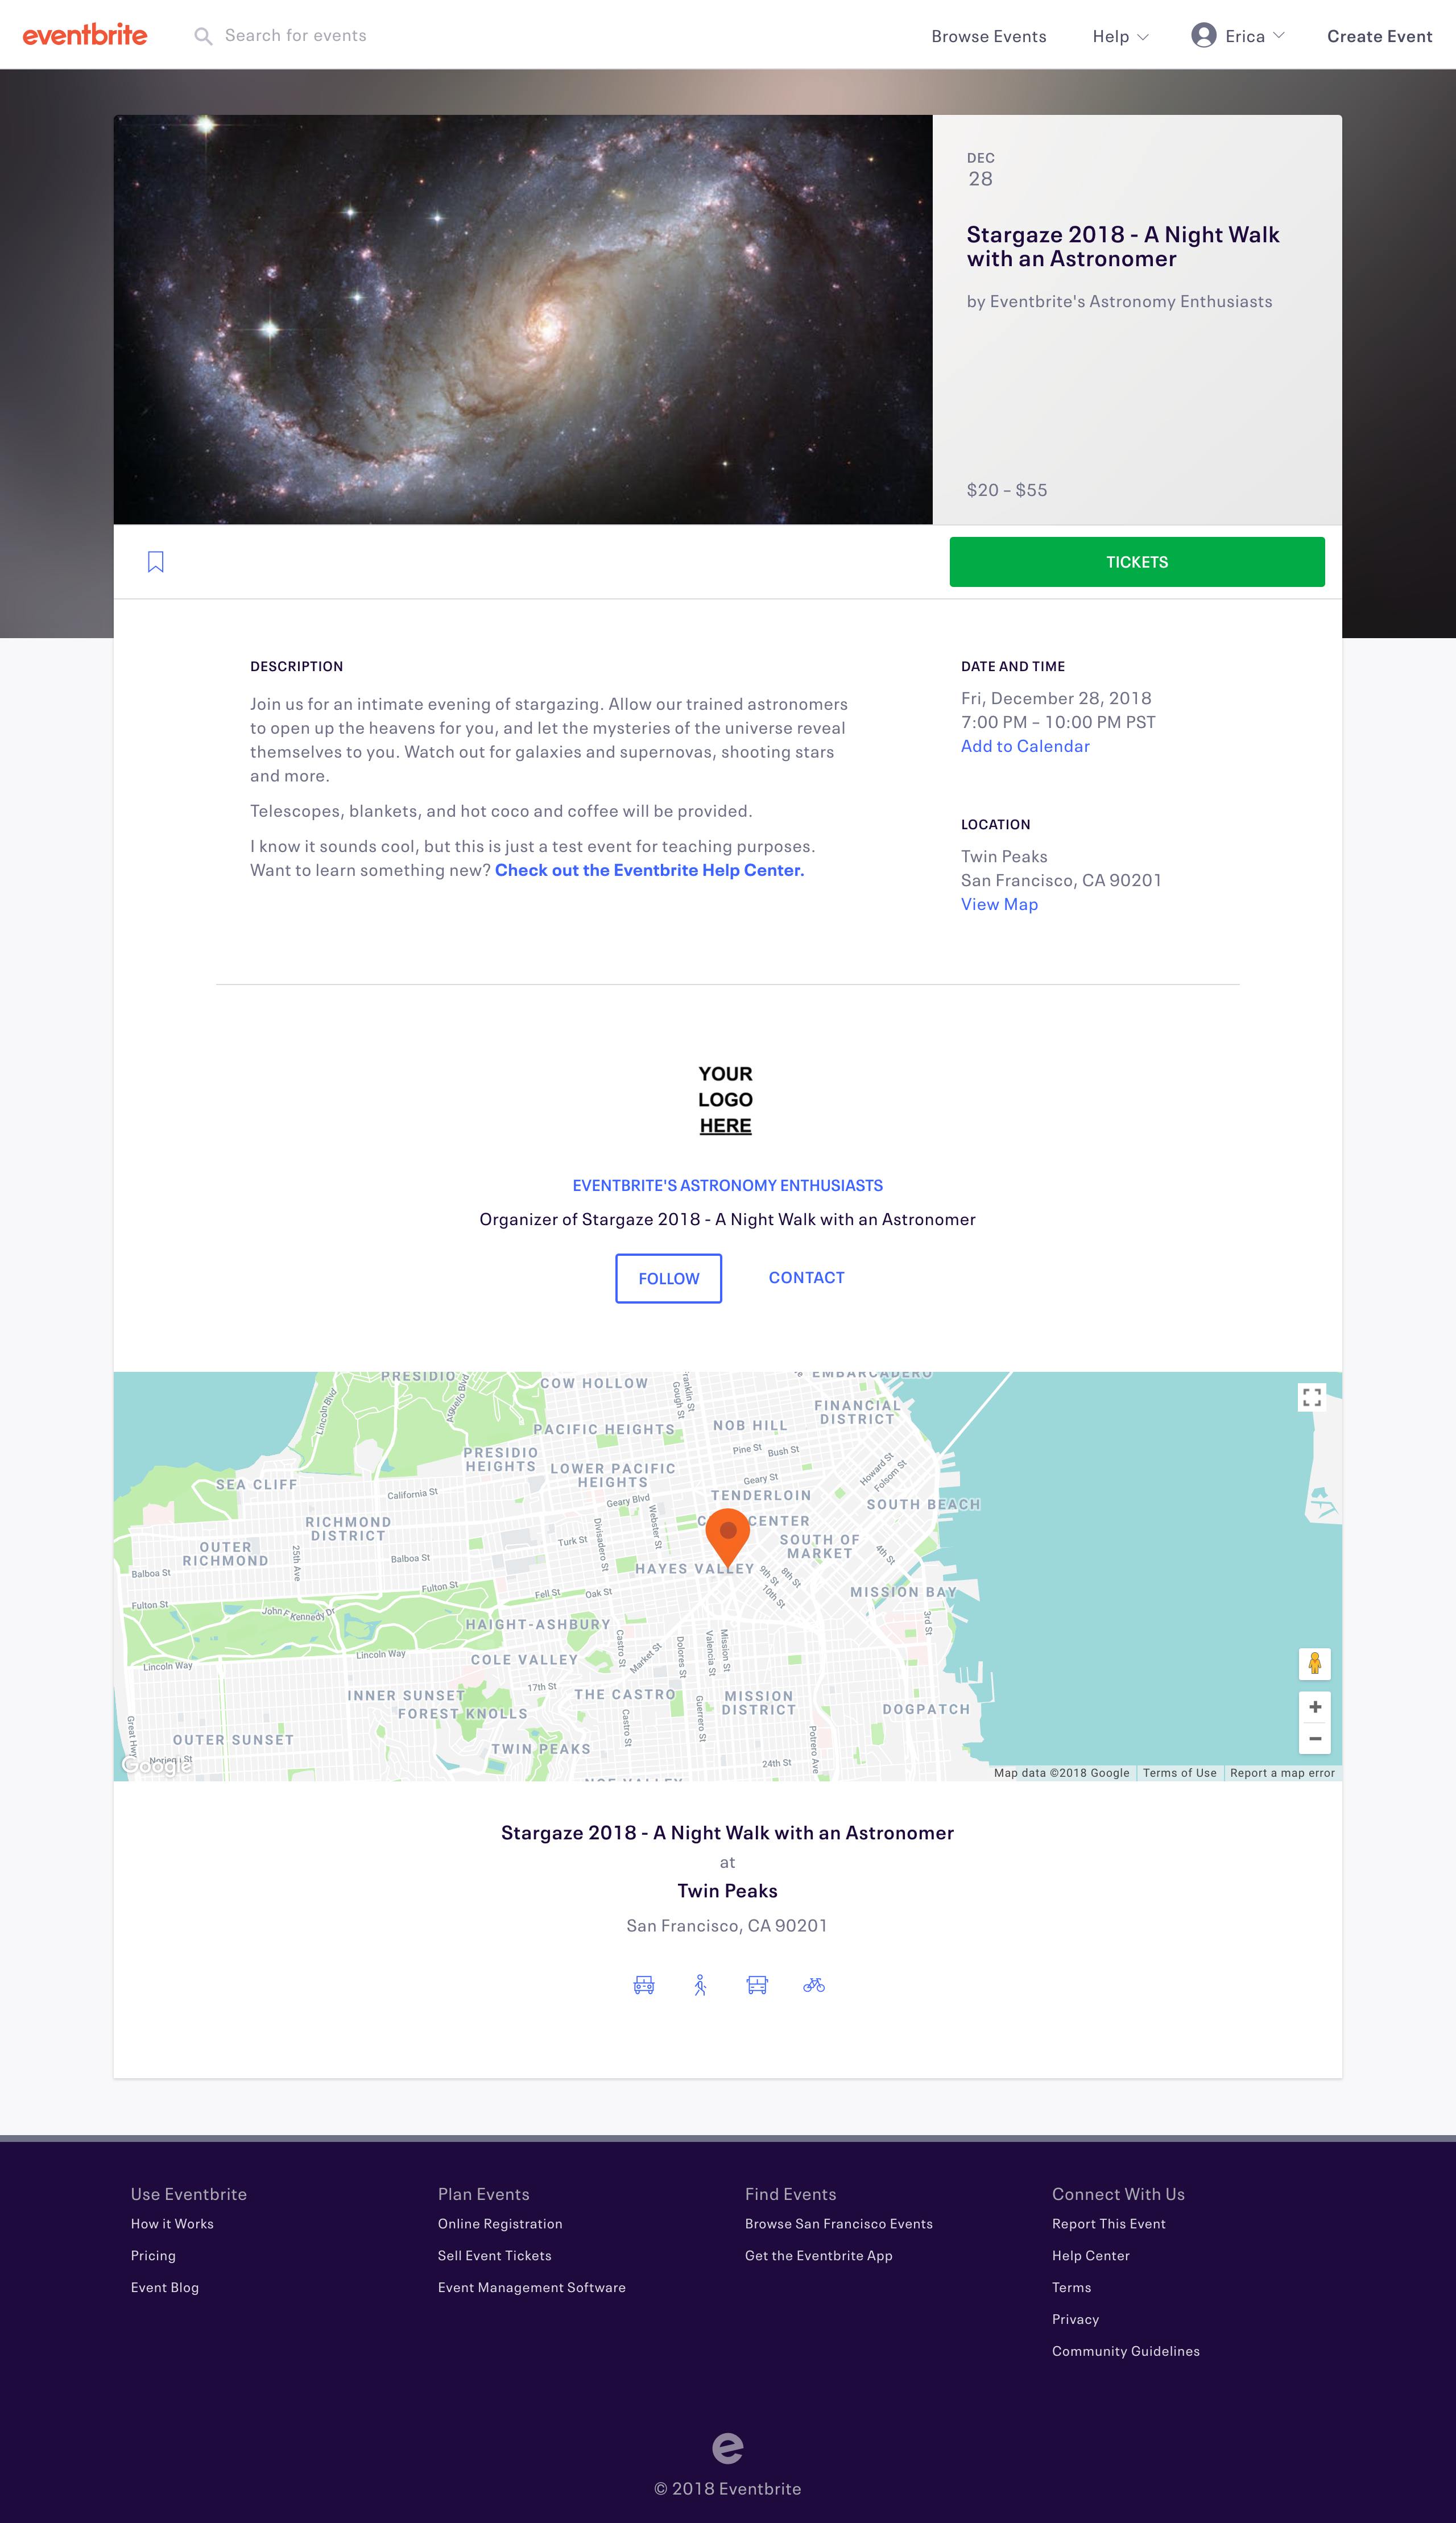 Eventbrite event listing created by the event organizer. Attendees go here to view the details of an event and complete registration.